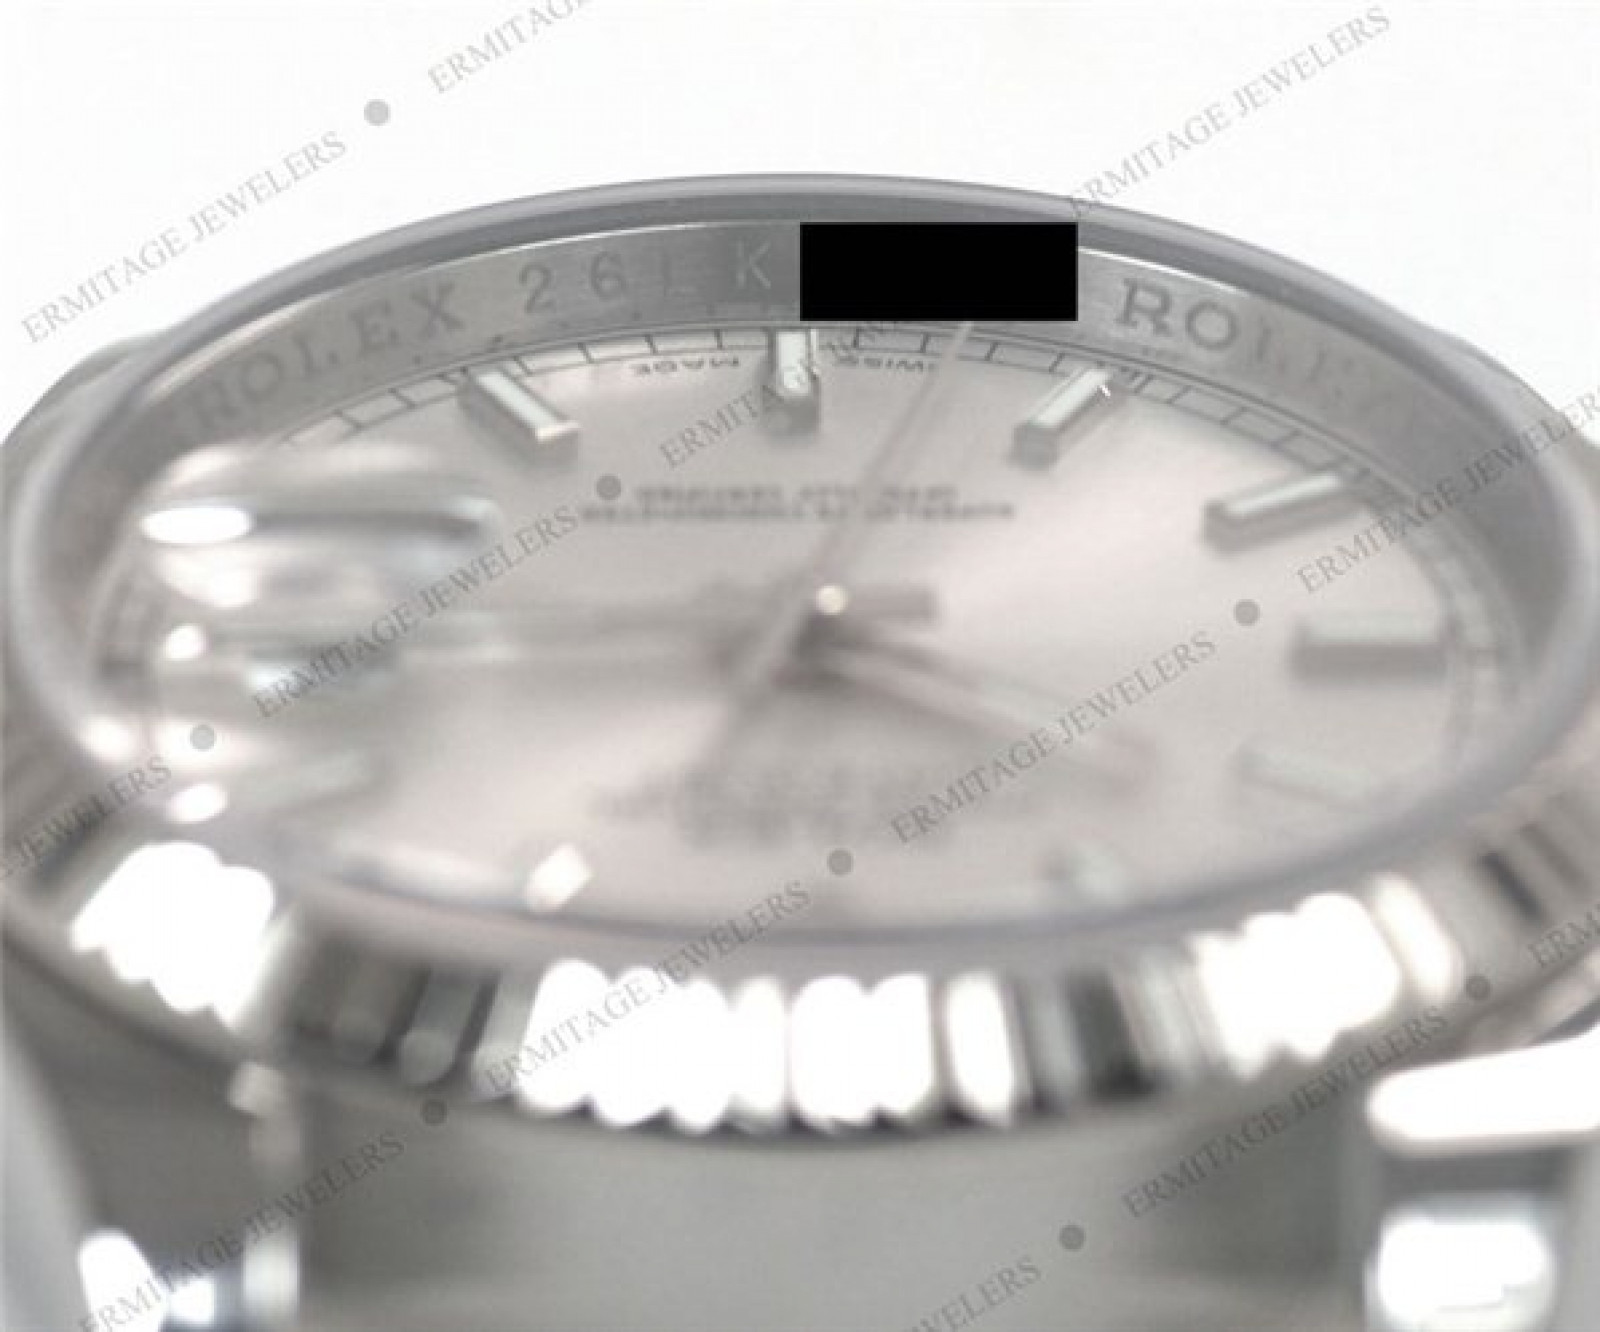 Rolex Datejust 116234 with 18 kt White Gold